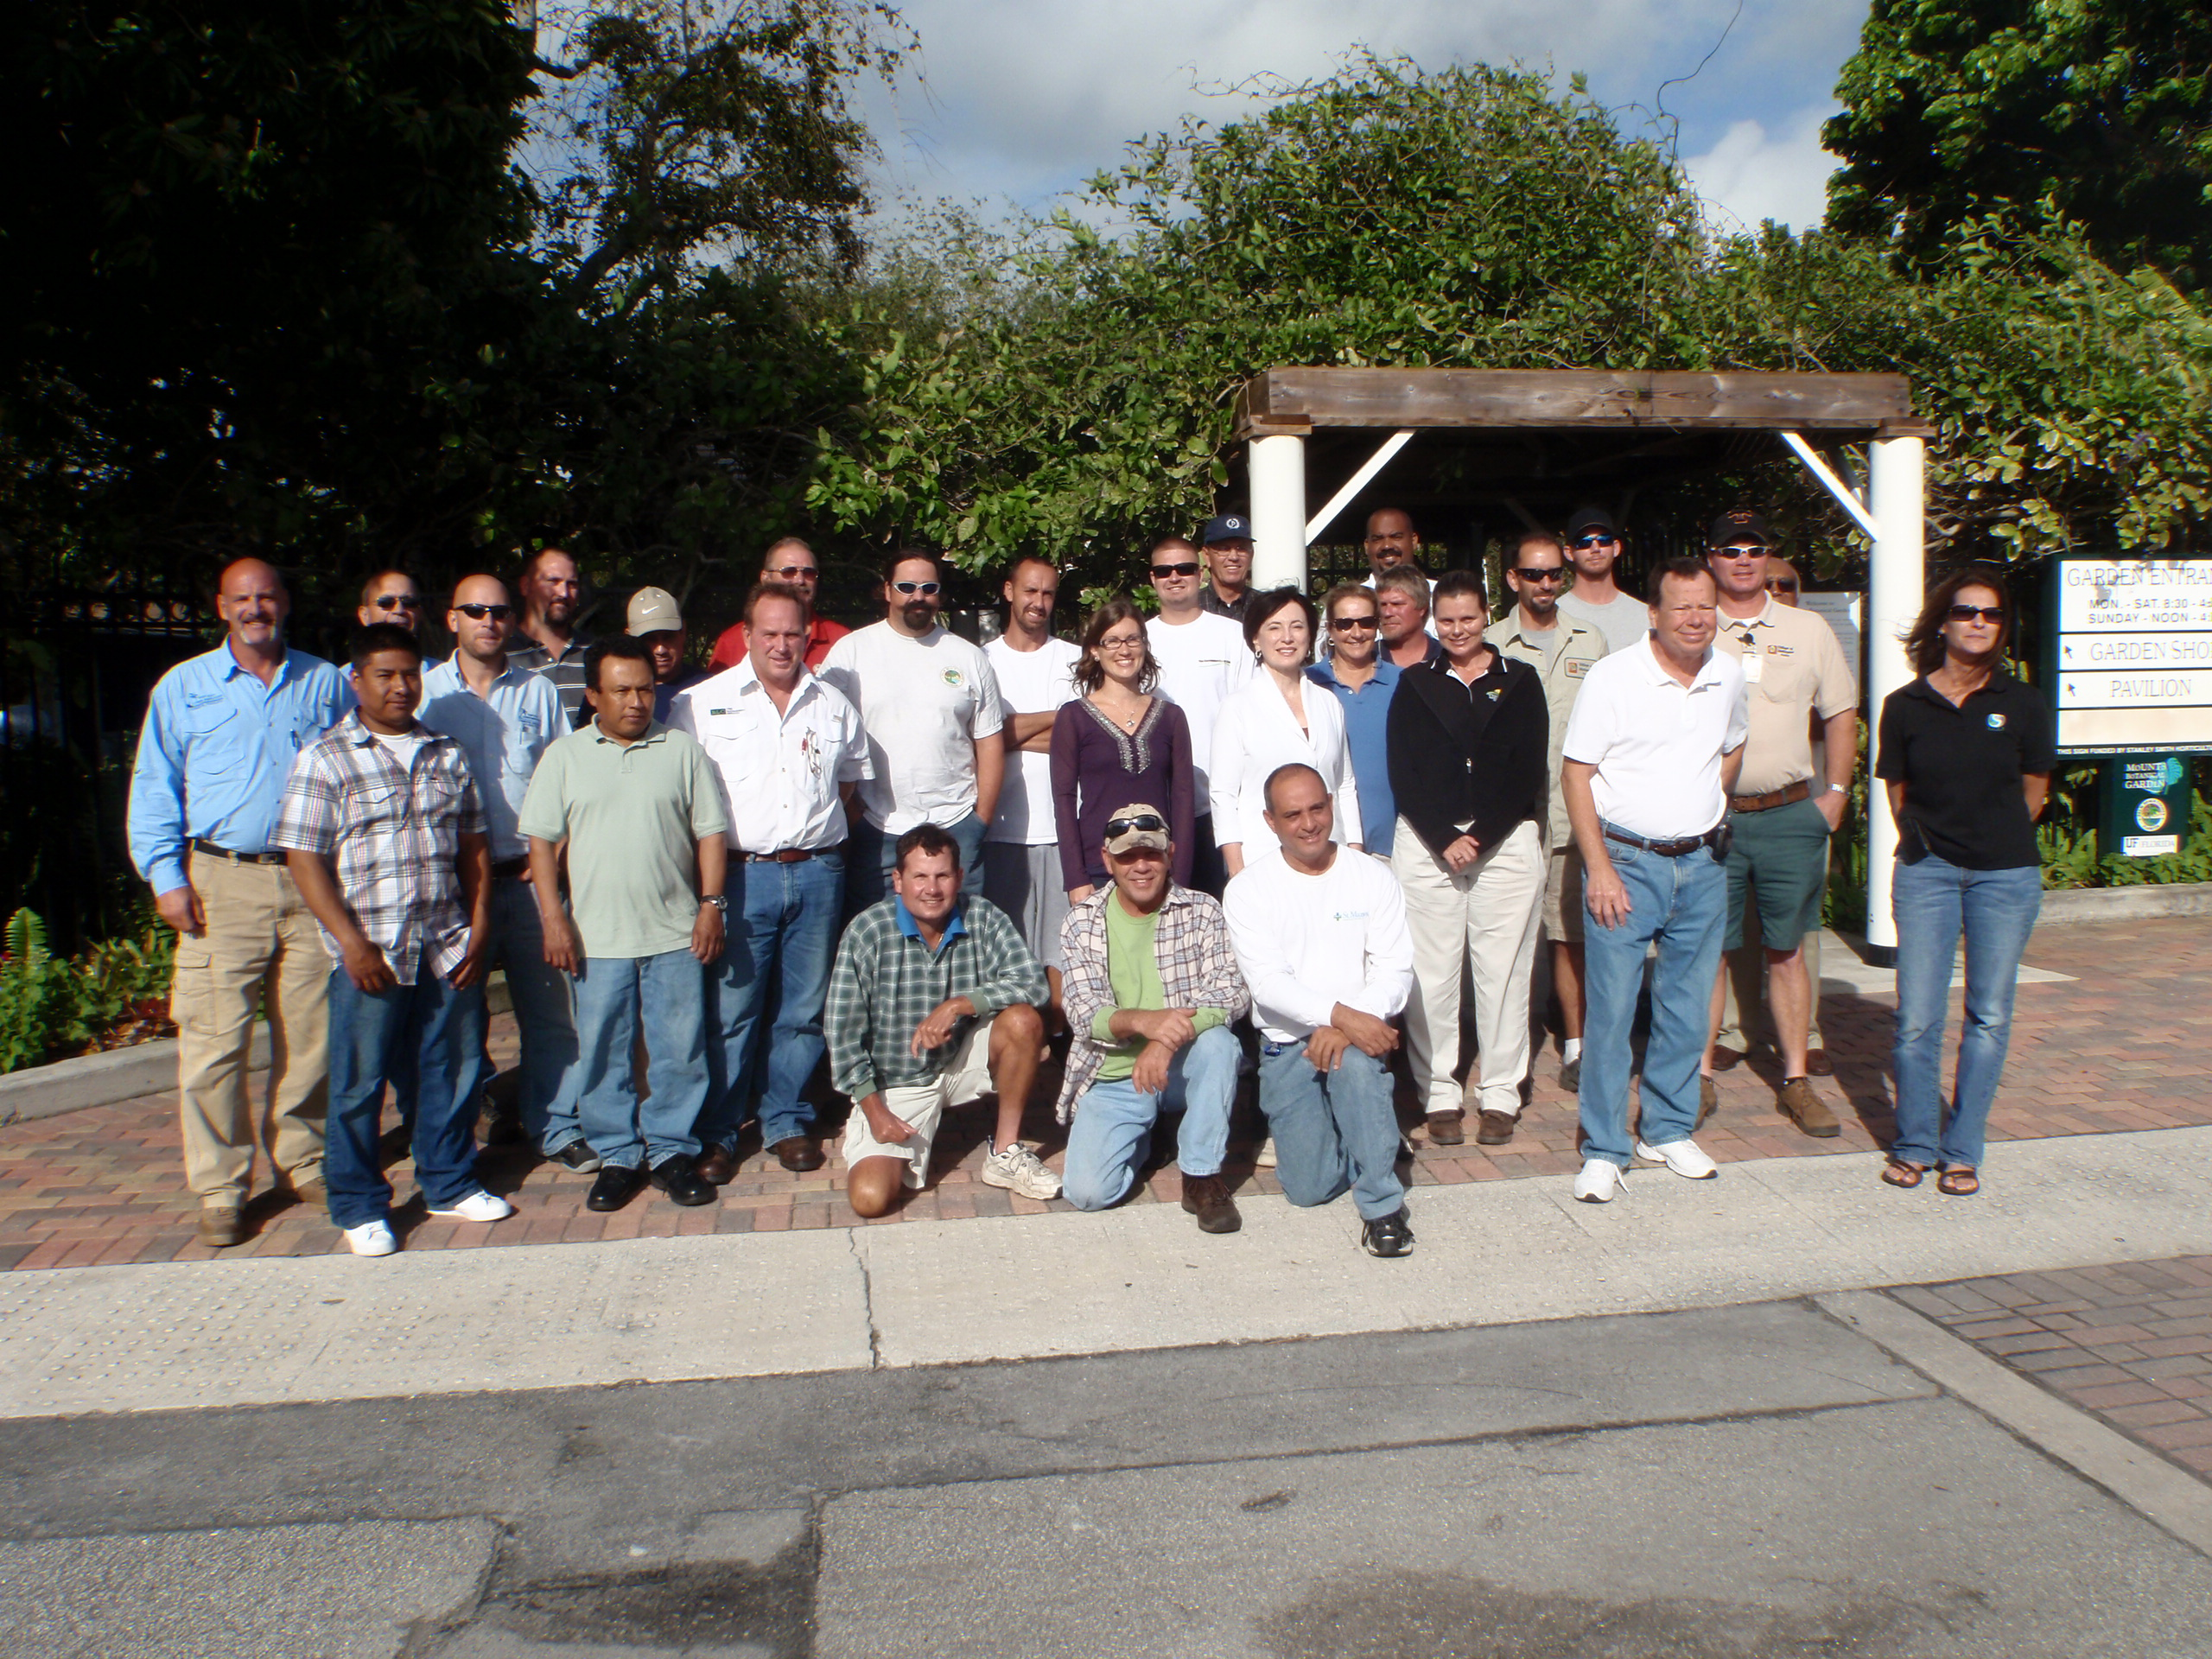 Florida-Friendly Landscaping   IFAS Palm Beach Extension